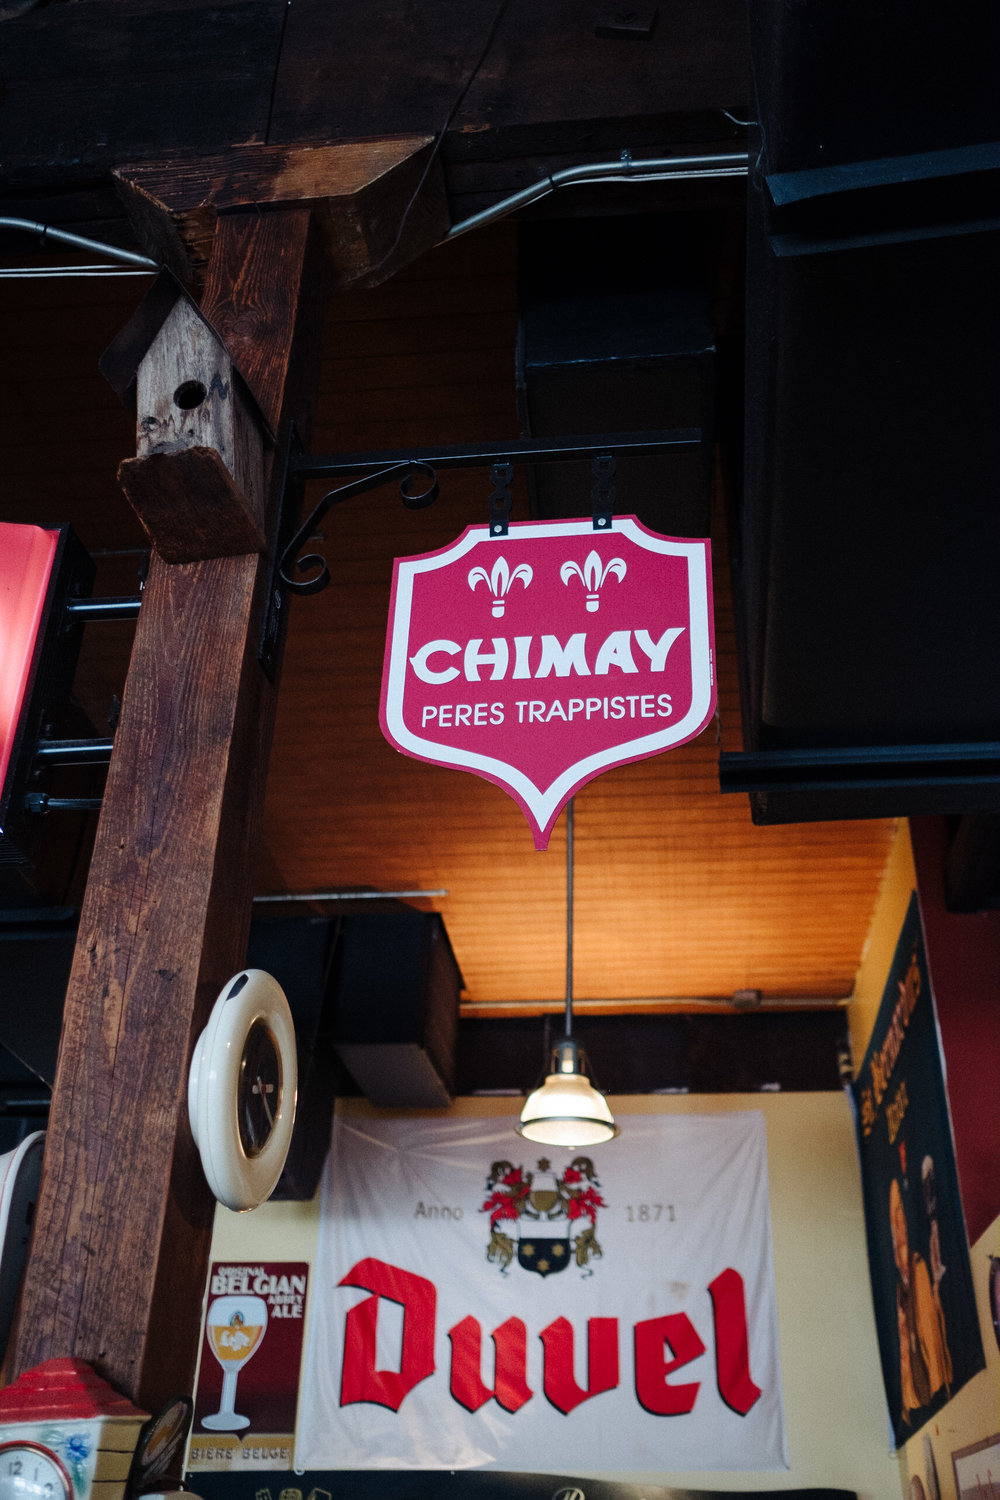 I am not sure what those Trapist monks do to make Chimay one of my favorites, but keep up the Lord's work.